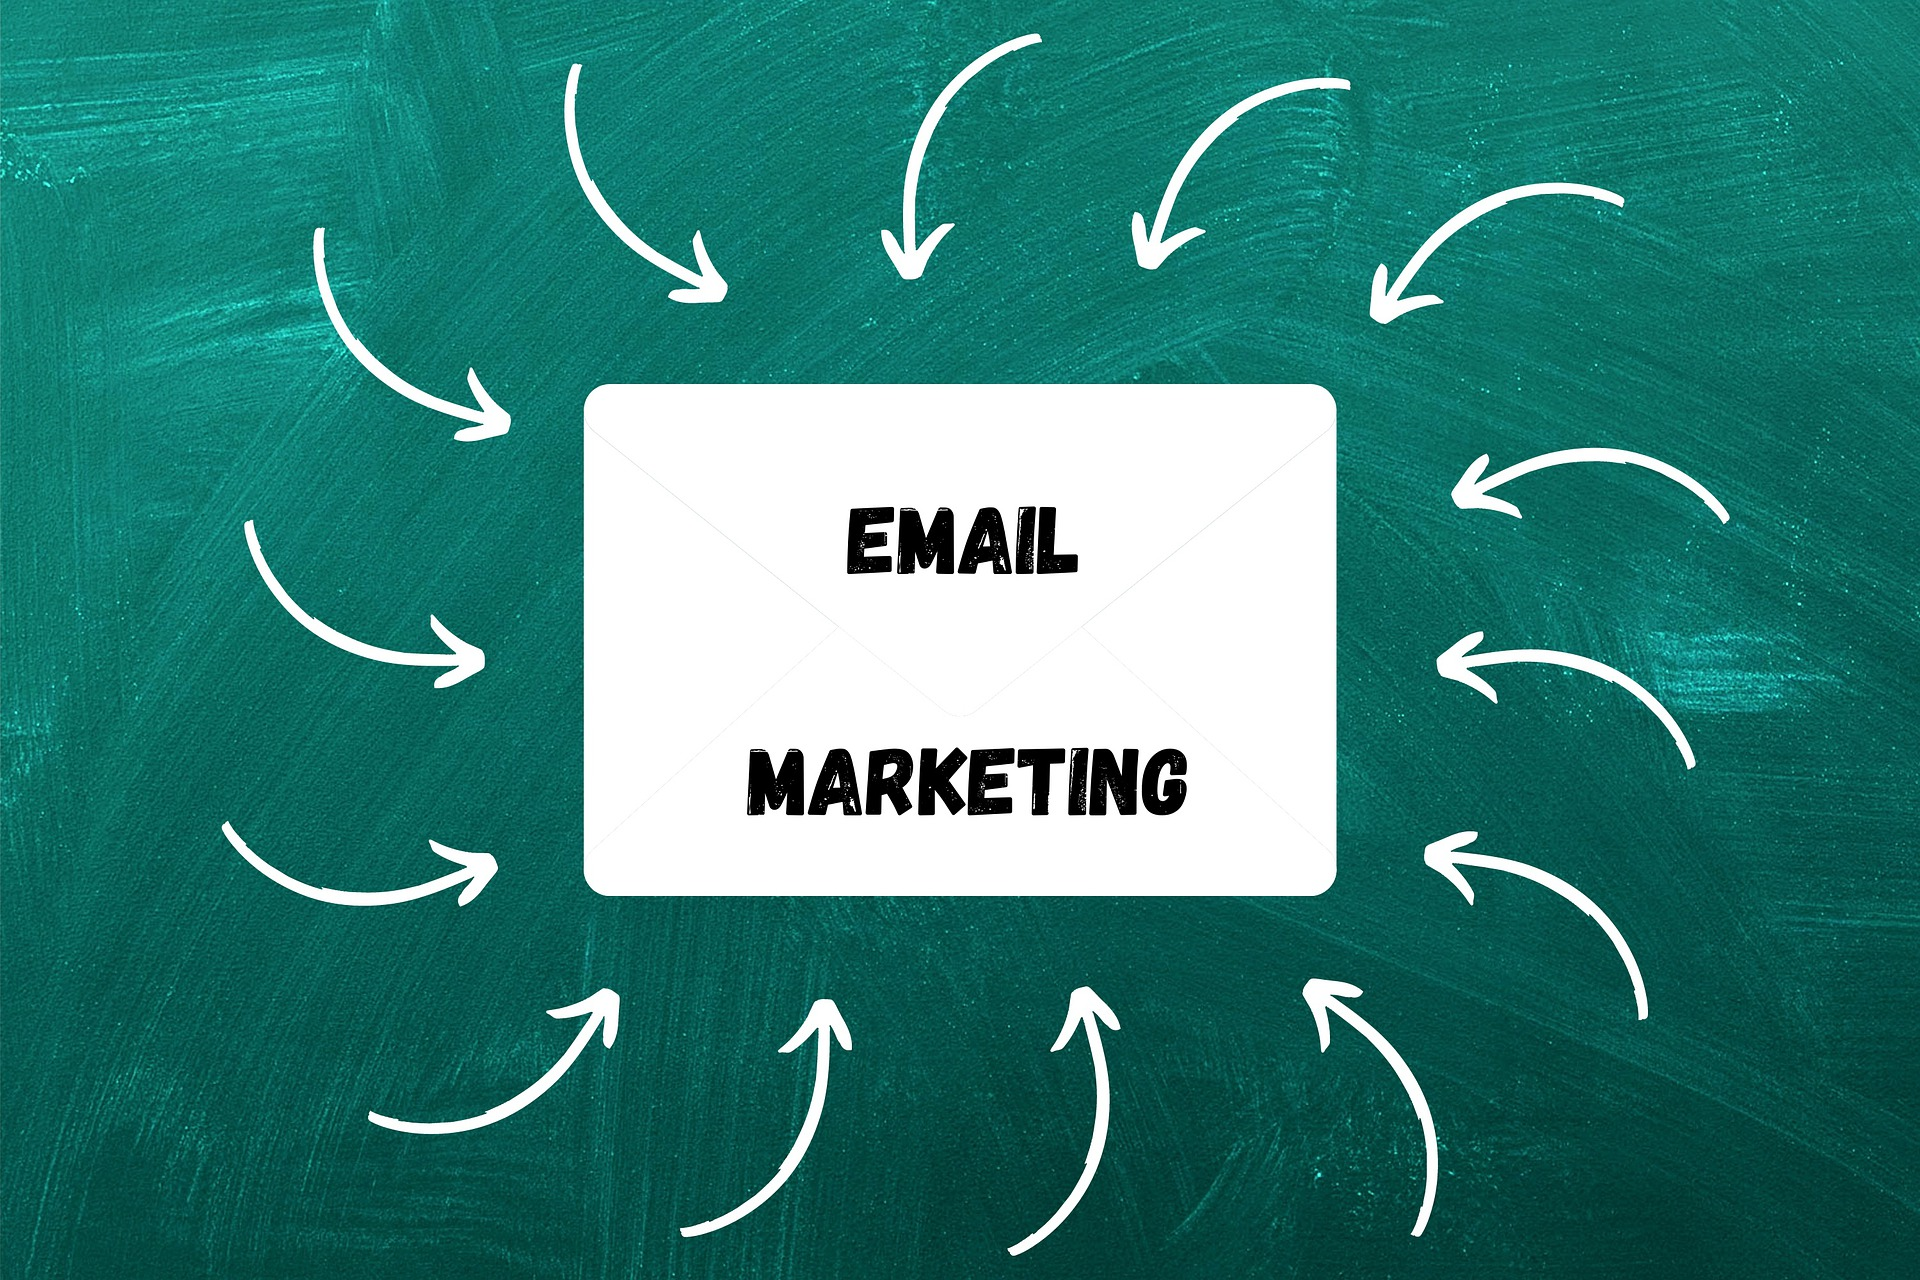 Email marketing tips and techniques | Email marketing tips and tricks